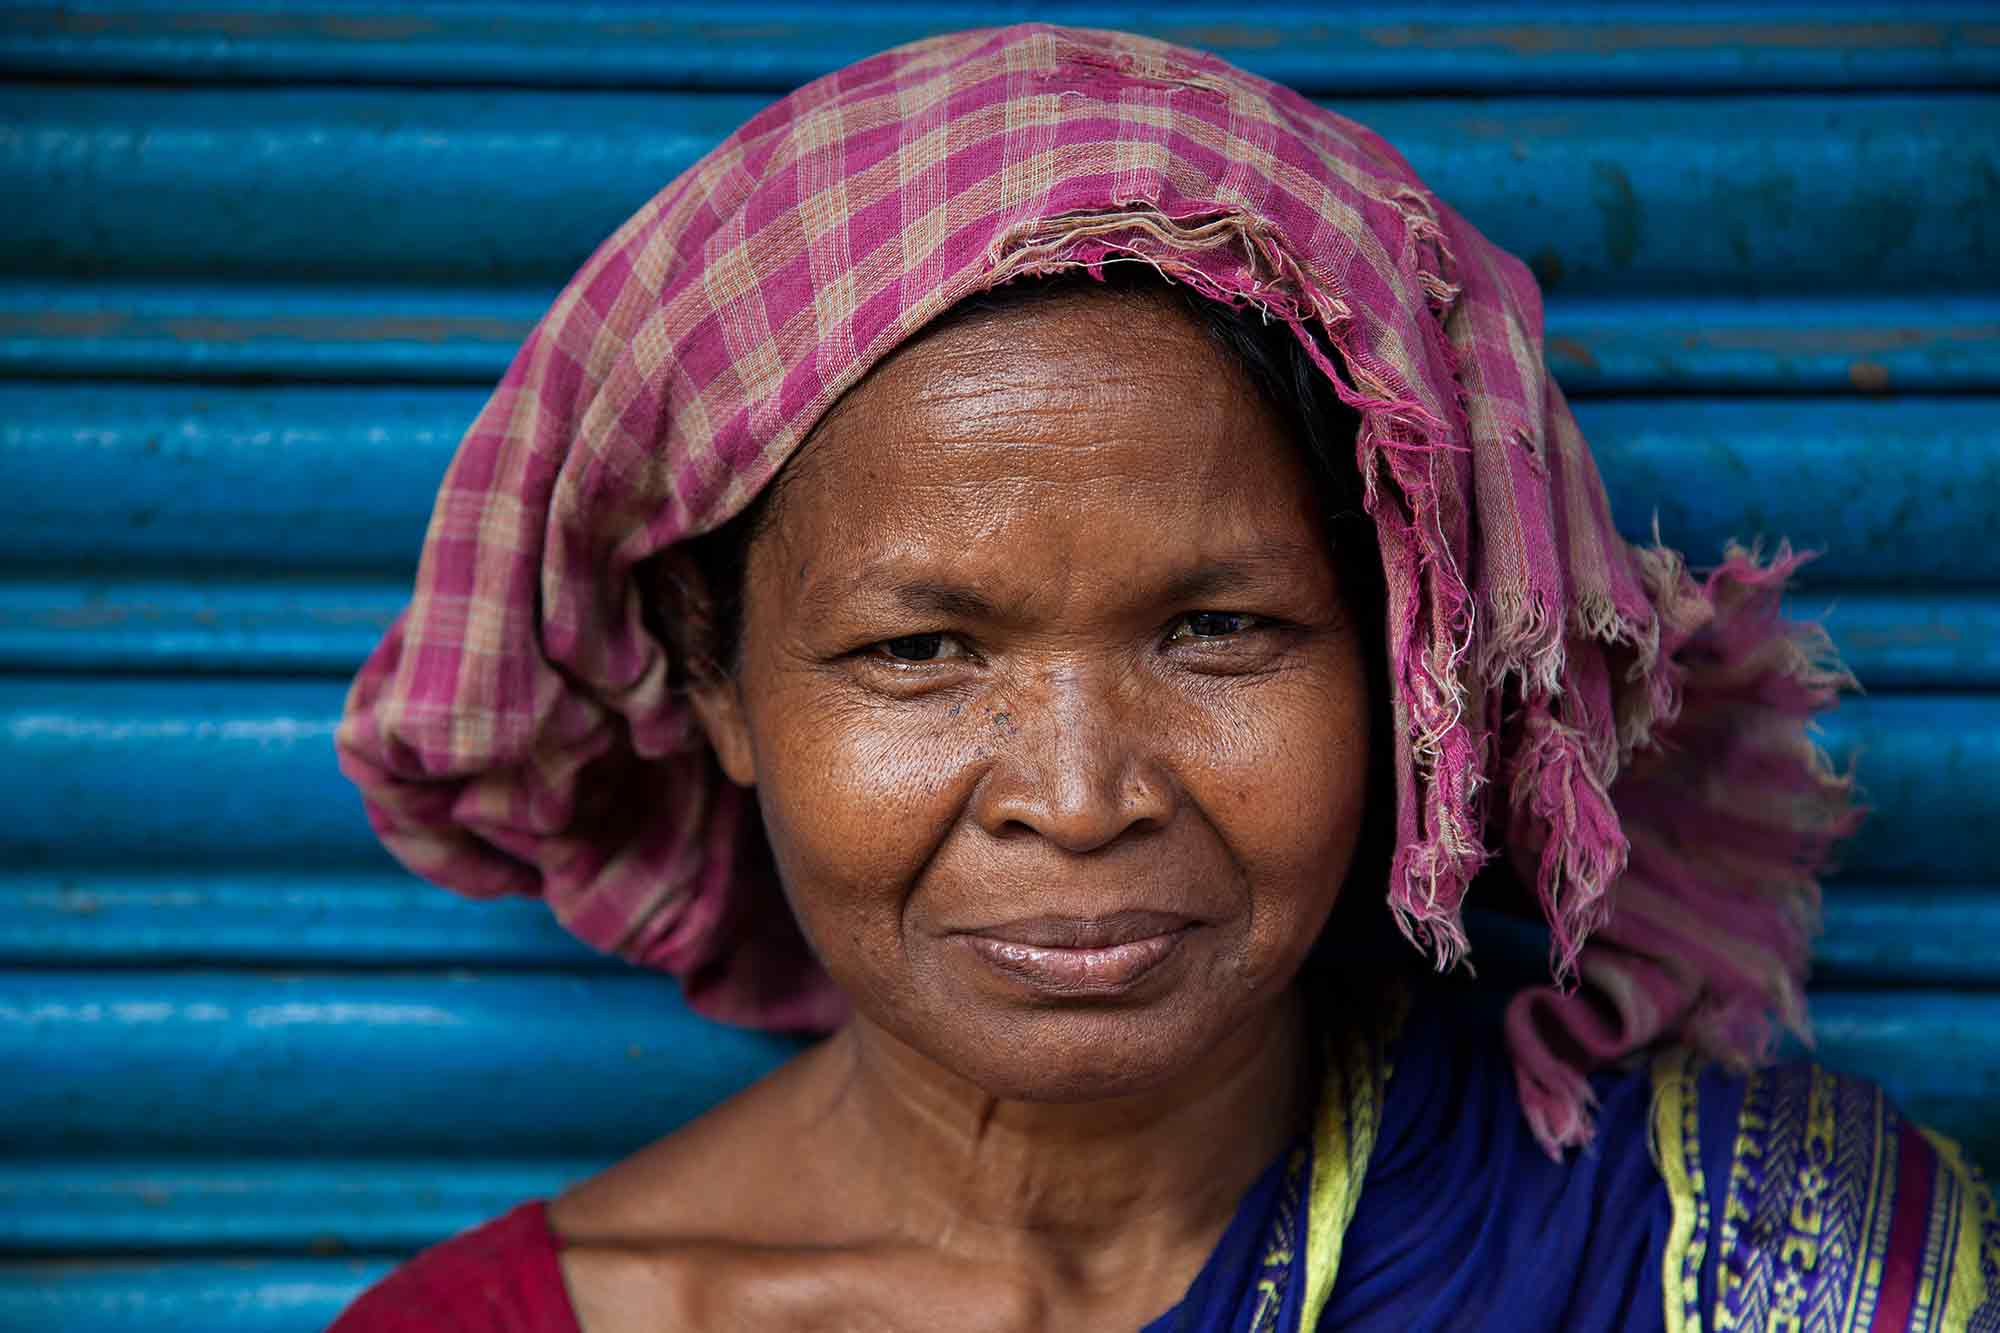 portrait-woman-in-front-of-blue-wall-kolkata-india